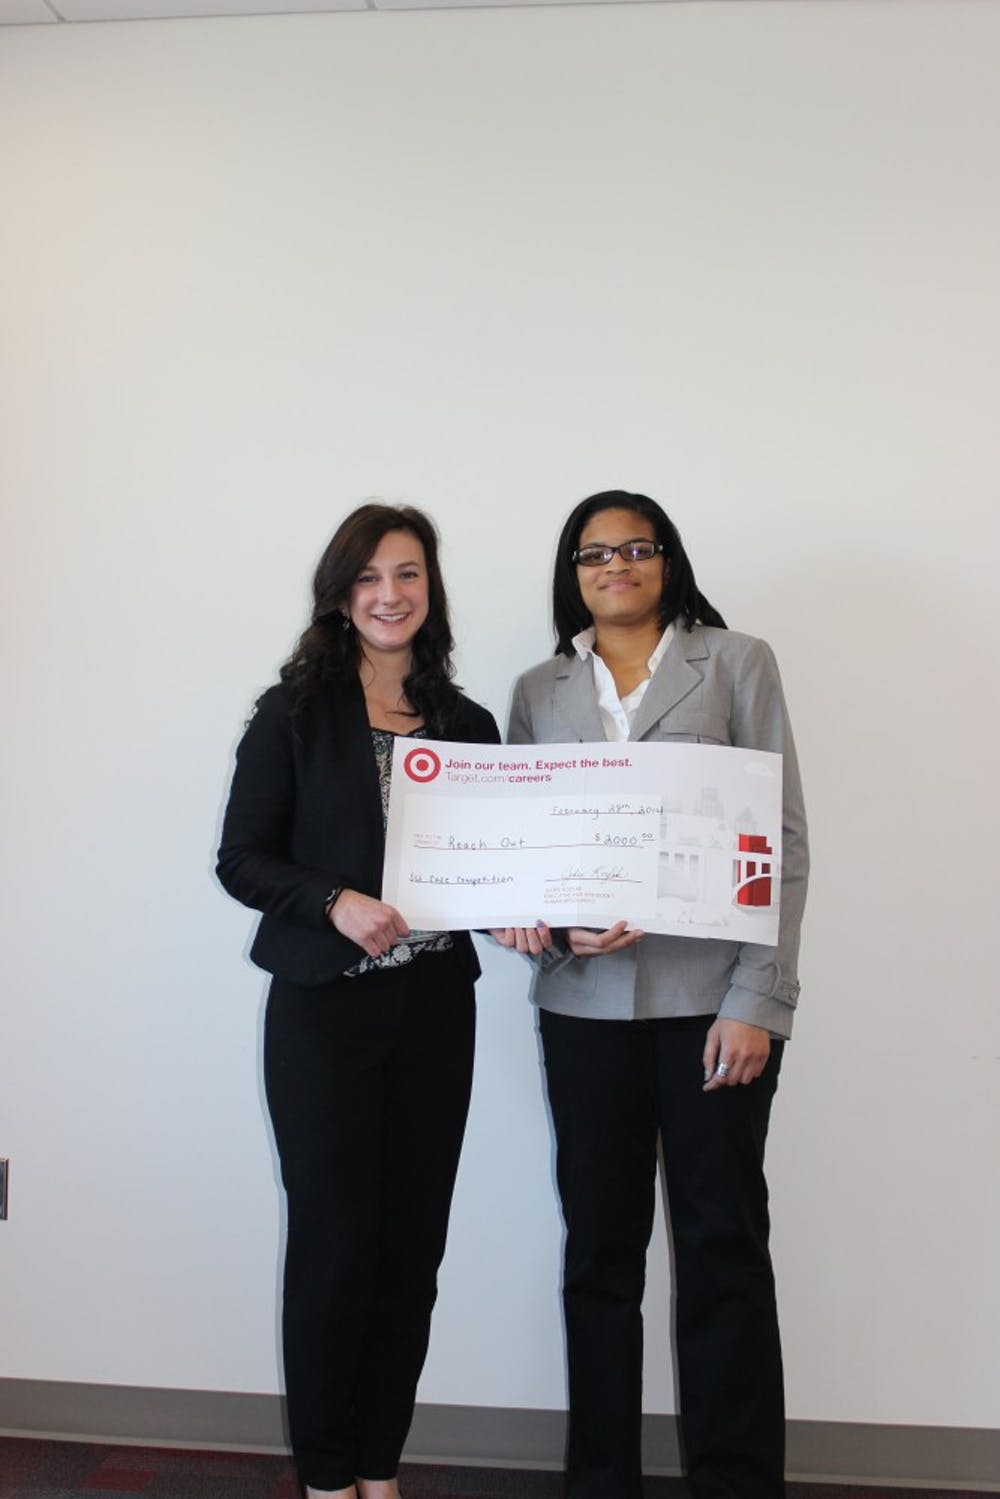 Reach Out group wins undergraduate club case competition